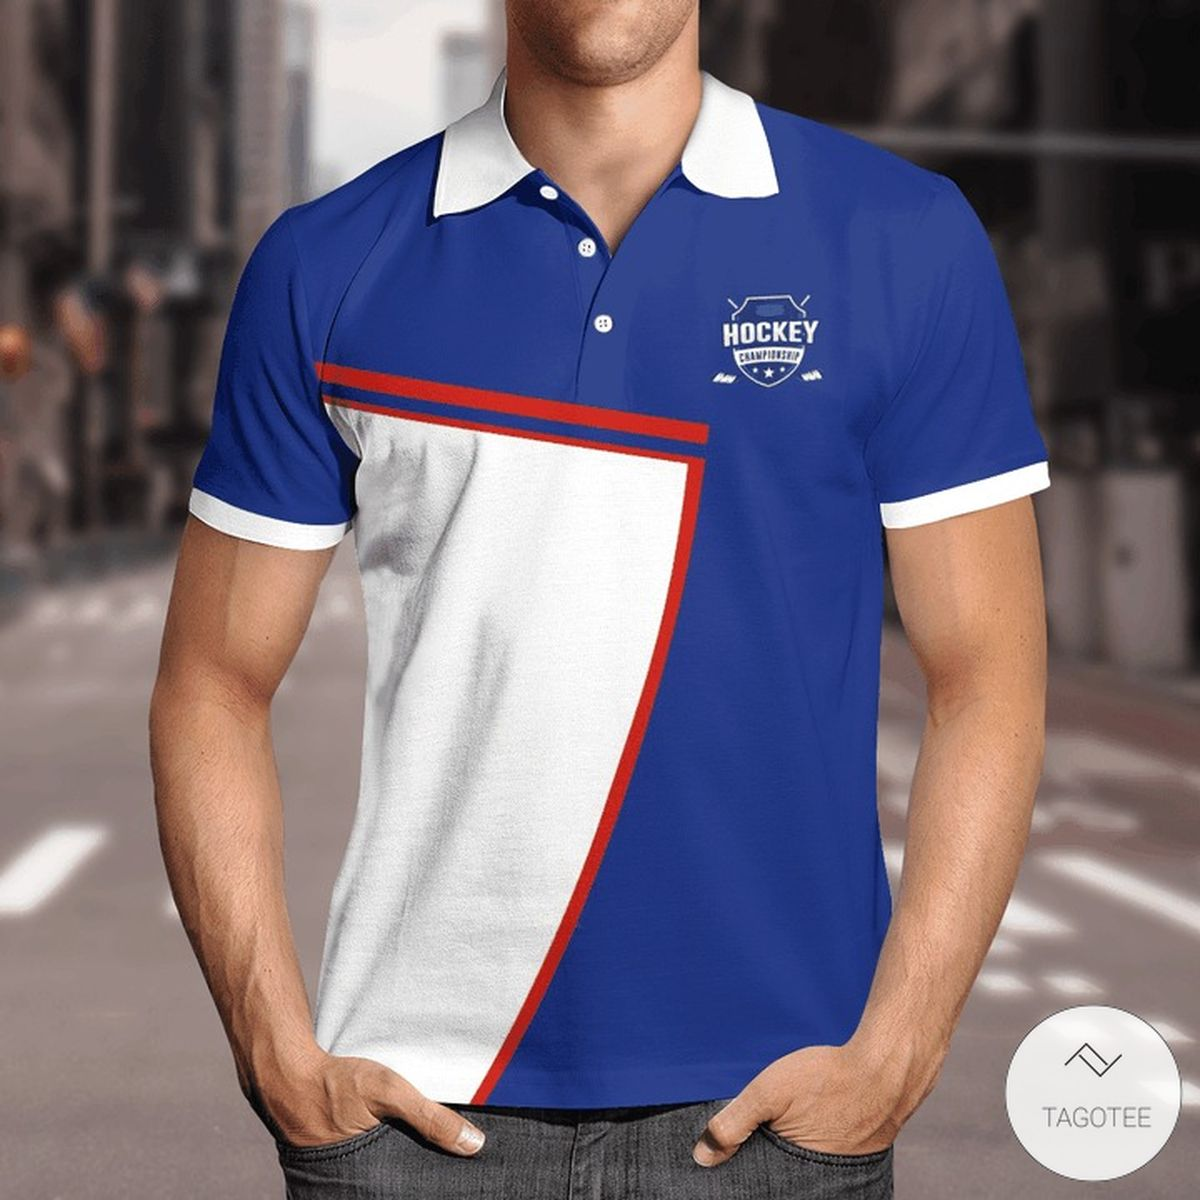 And Then God Said Let There Be Sexy People So He Made Hockey Player Polo Shirt